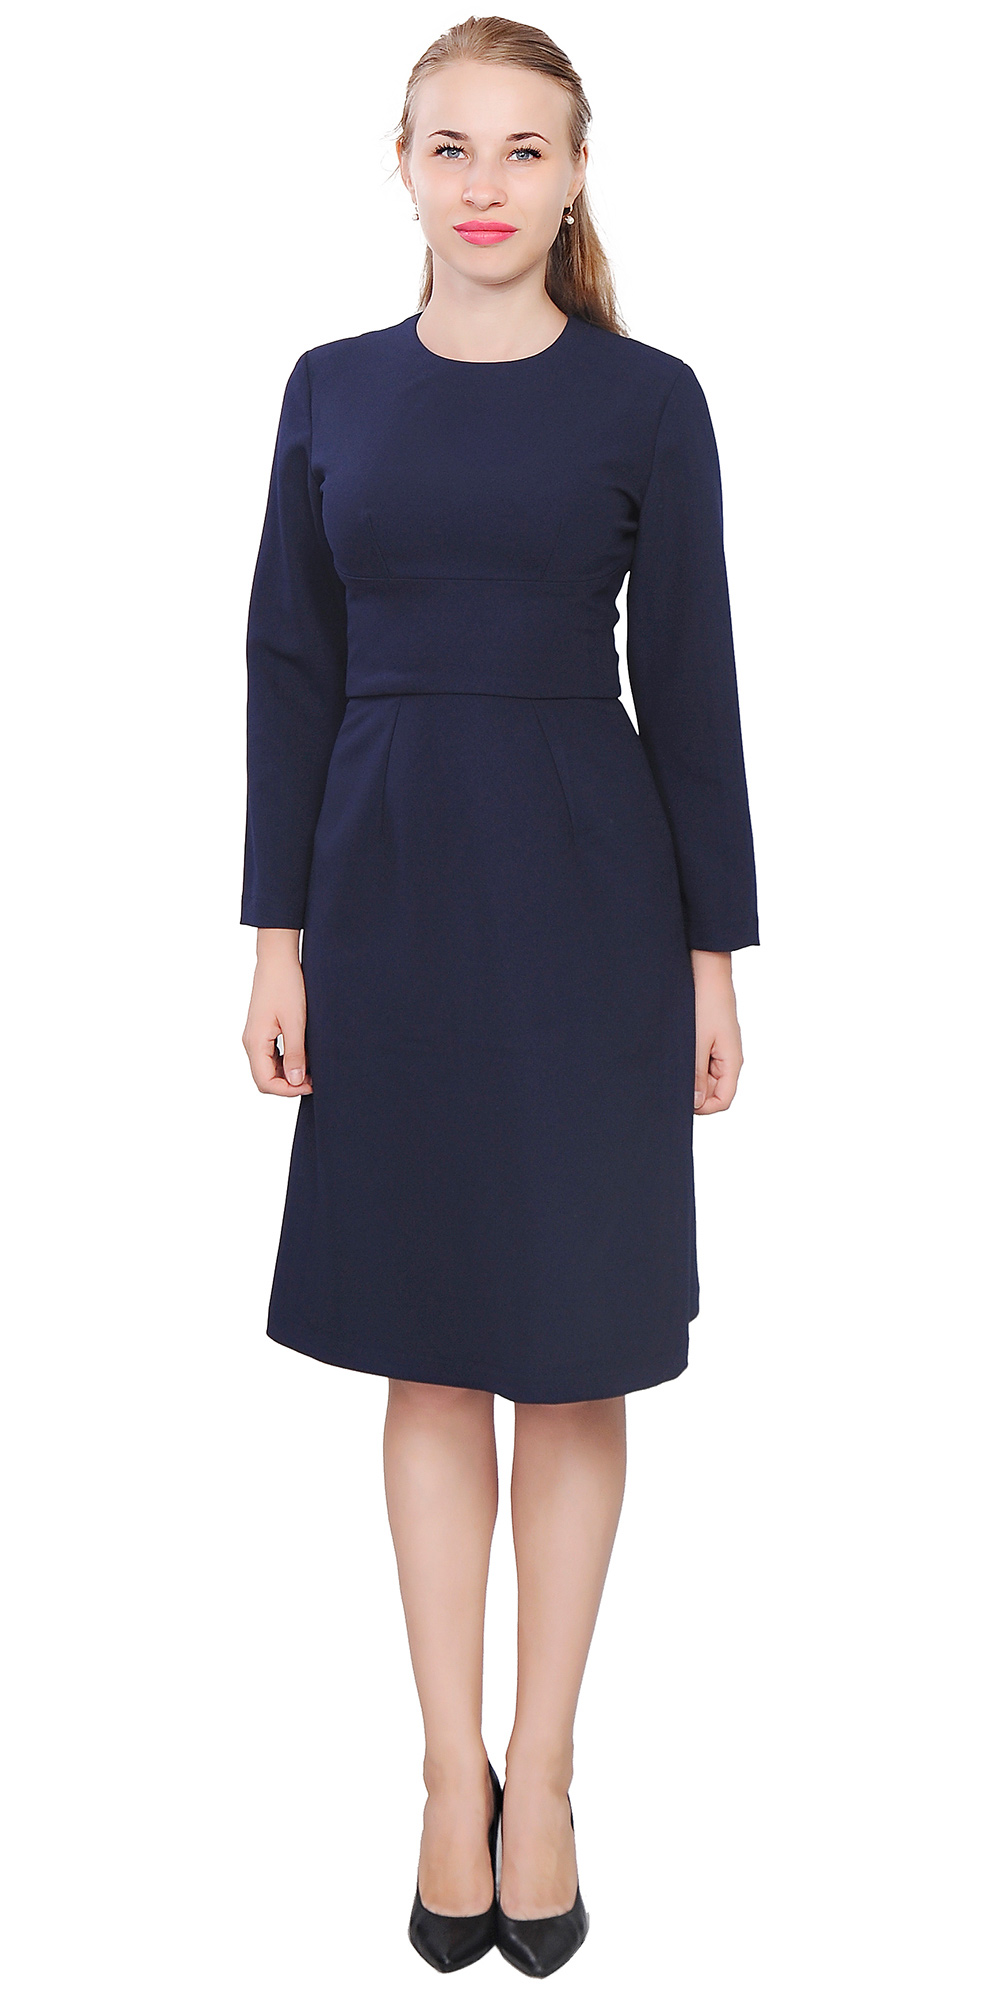 I really really wanted to love this dress, and I do think it is a lovely dress, but unfortunately it just didn't work for my body. The colors were true to the picture and the top was a deep rich blue.